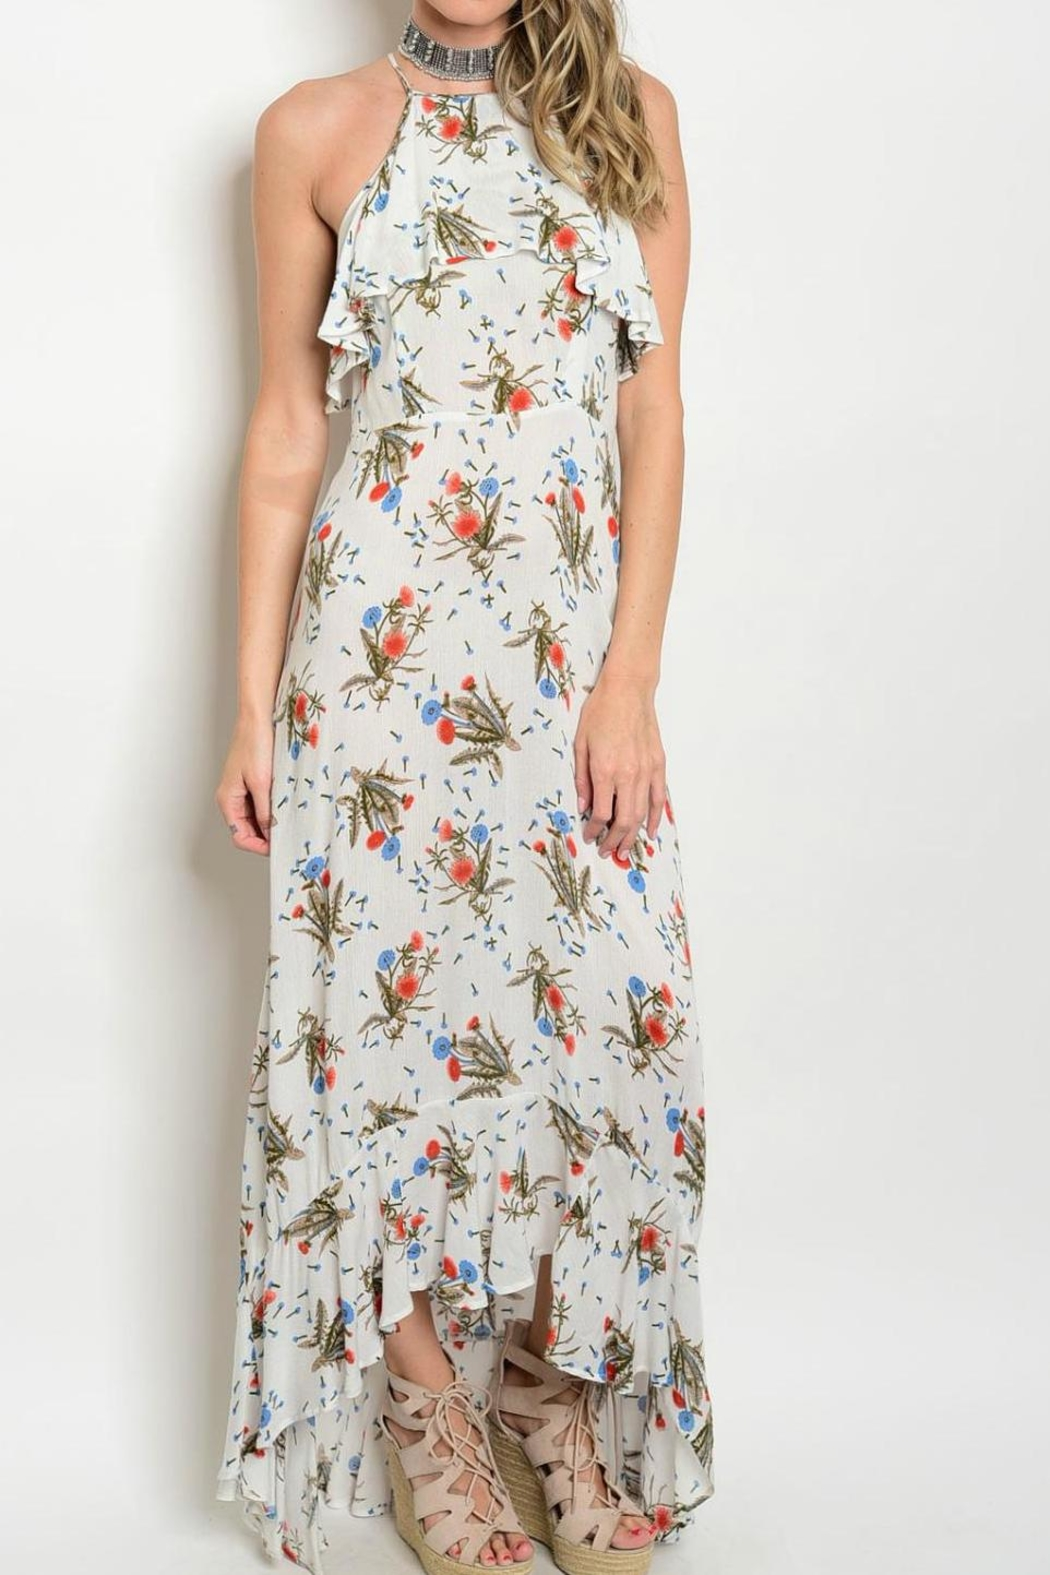 Renamed Clothing Floral White Dress - Main Image